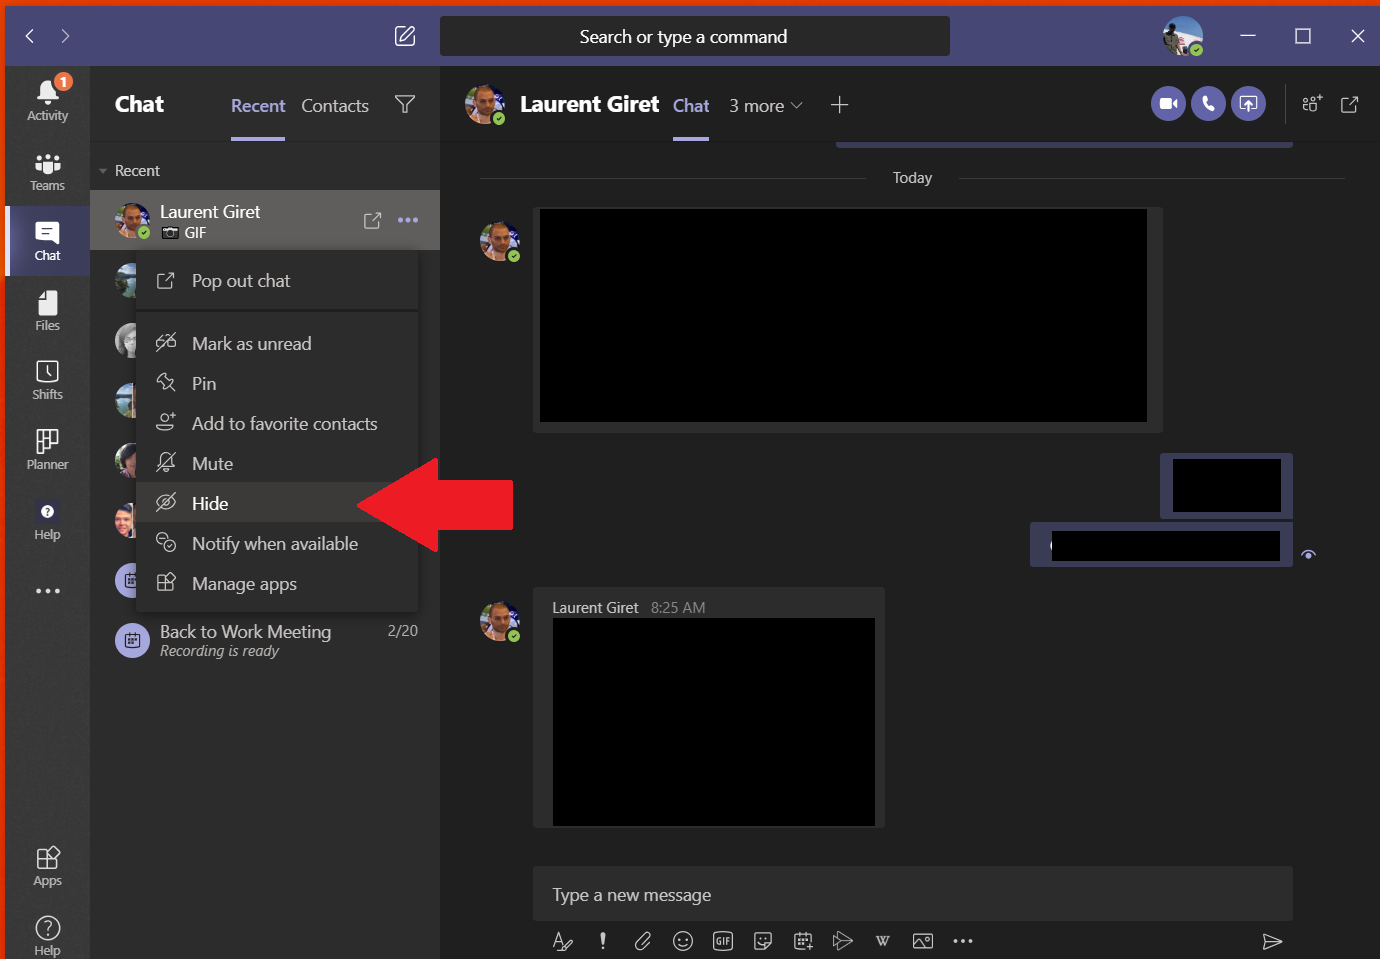 Getting more out of Microsoft Teams: Everything you need to know about chat OnMSFT.com October 22, 2020